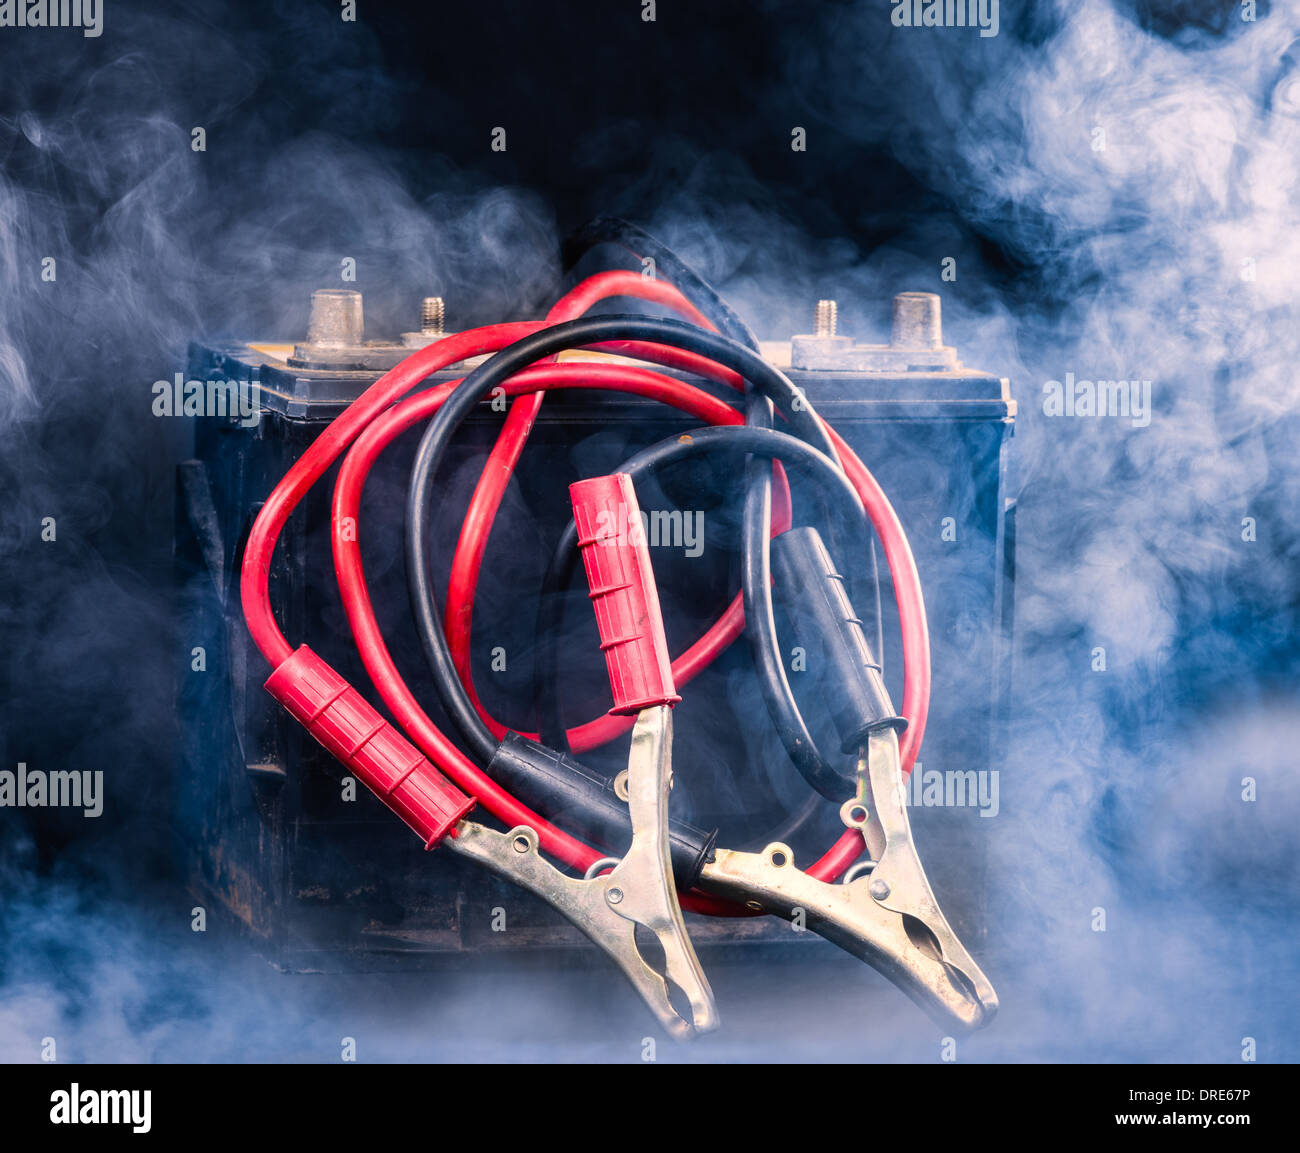 Old car battery and the jumper cables, smoky environment - Stock Image